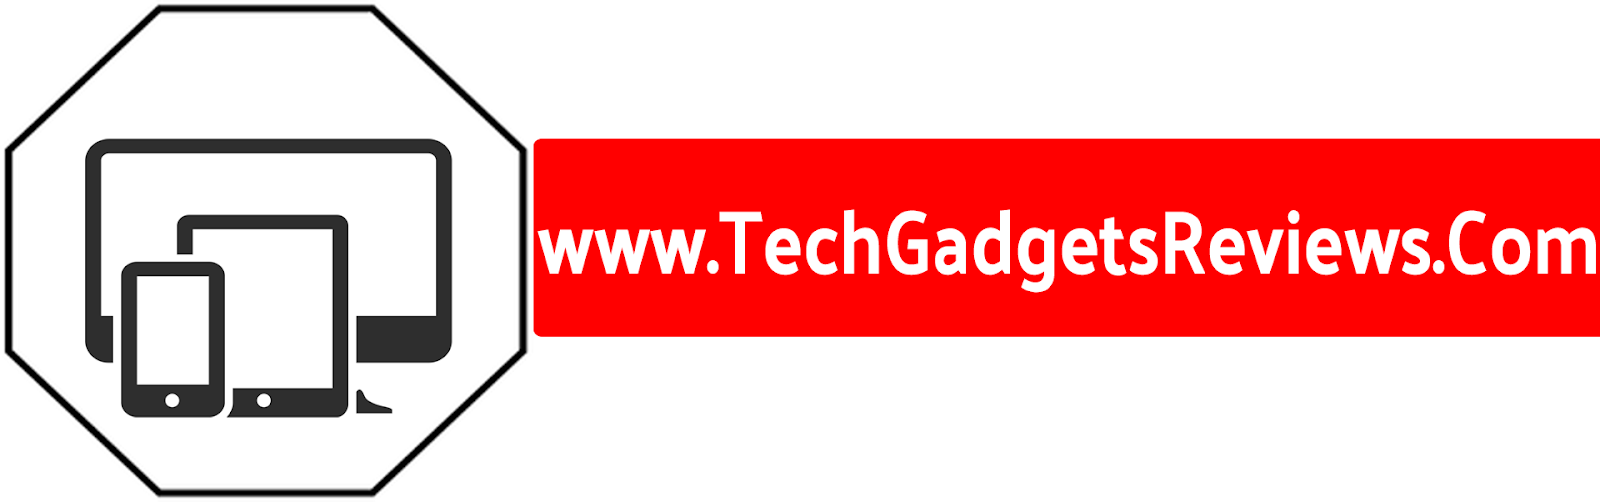 TechGadgetsReviews-Mobile Review,Laptop Review,Tech News,Etc